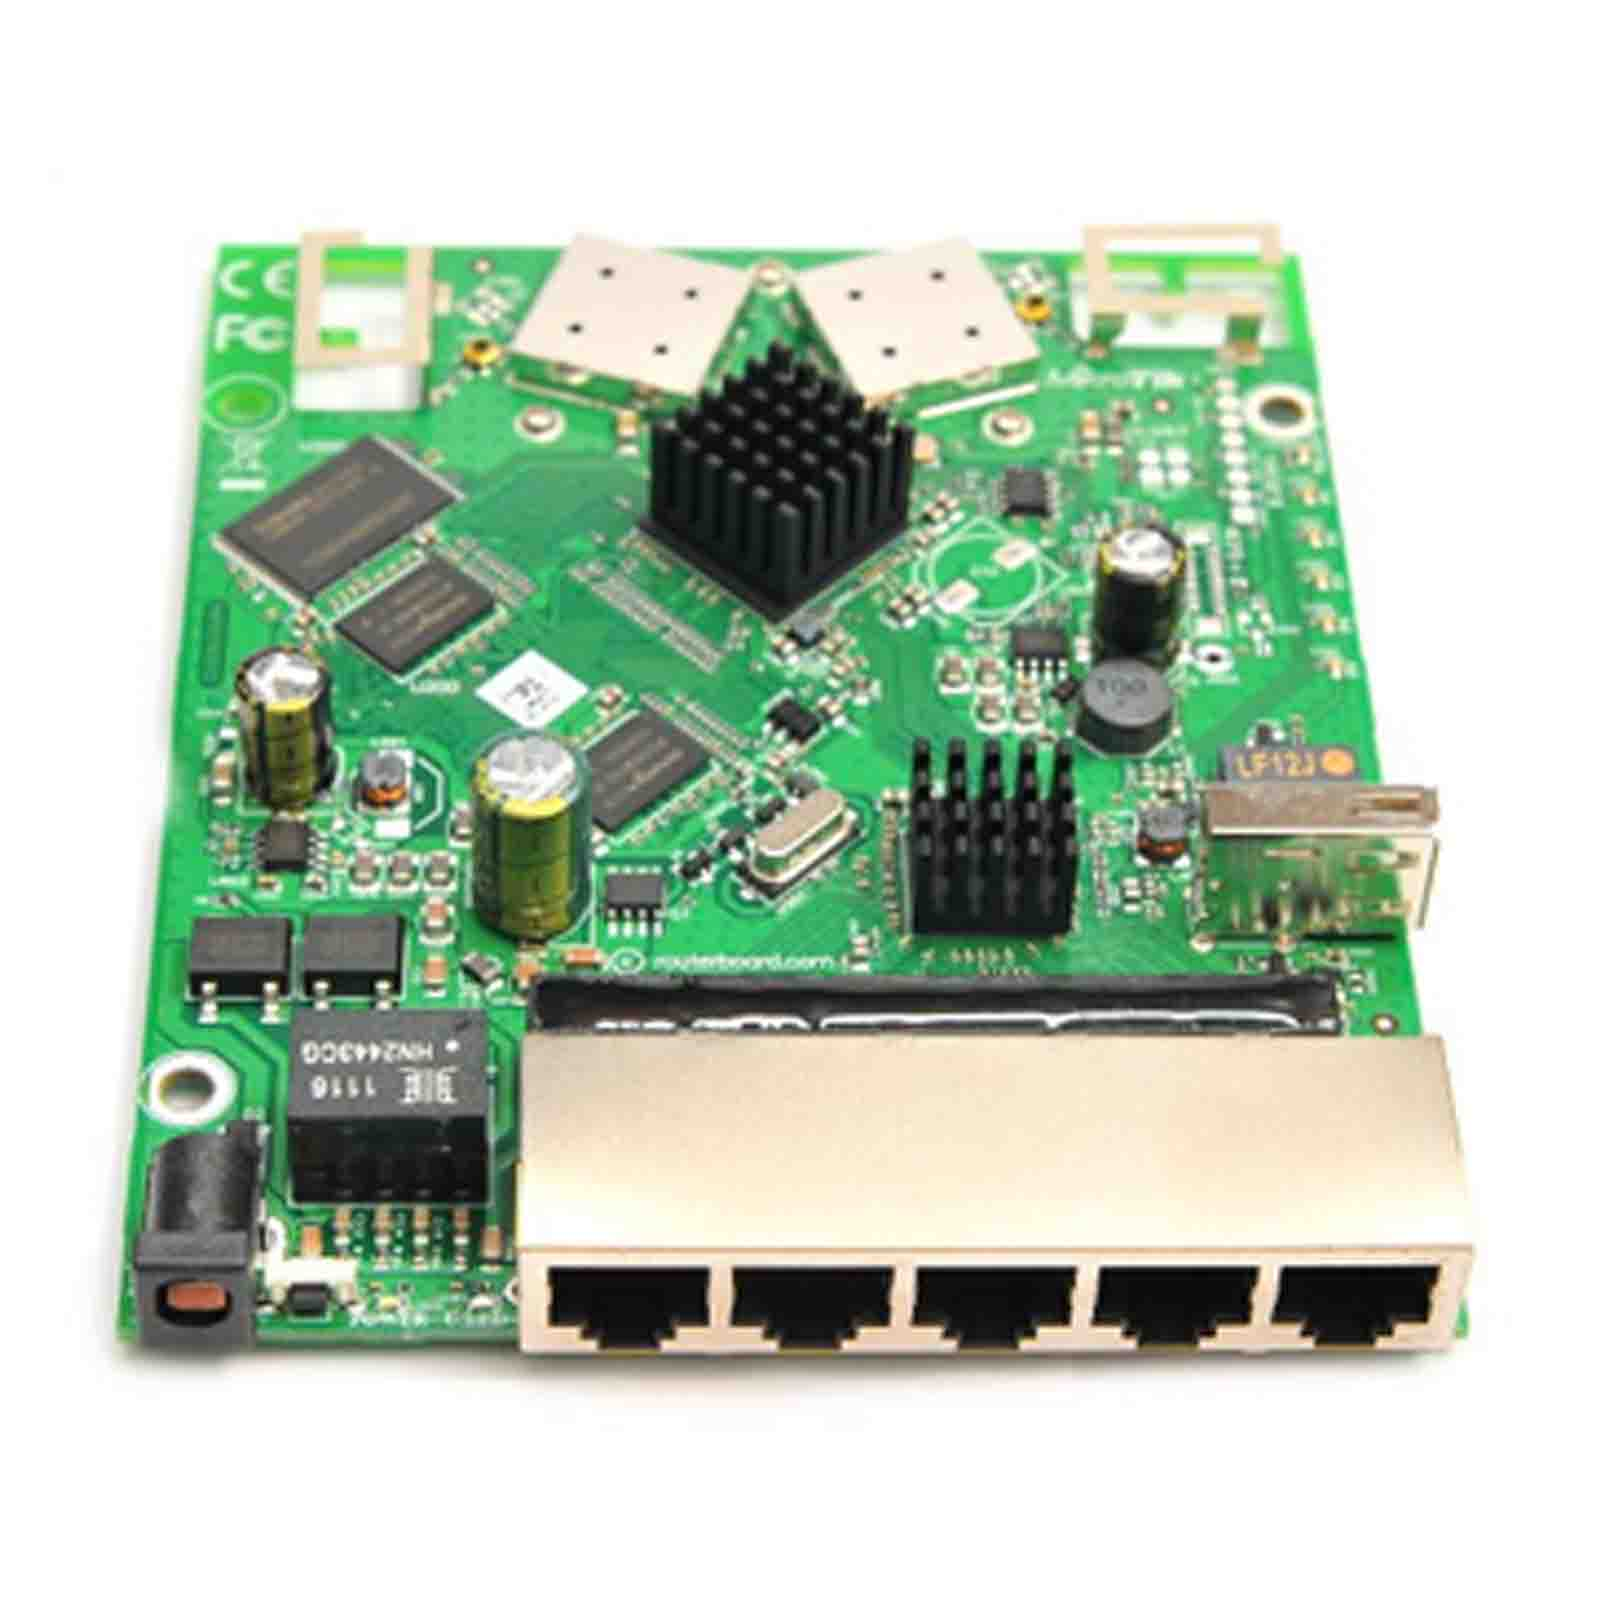 RouterBoard RB951G-2HnD